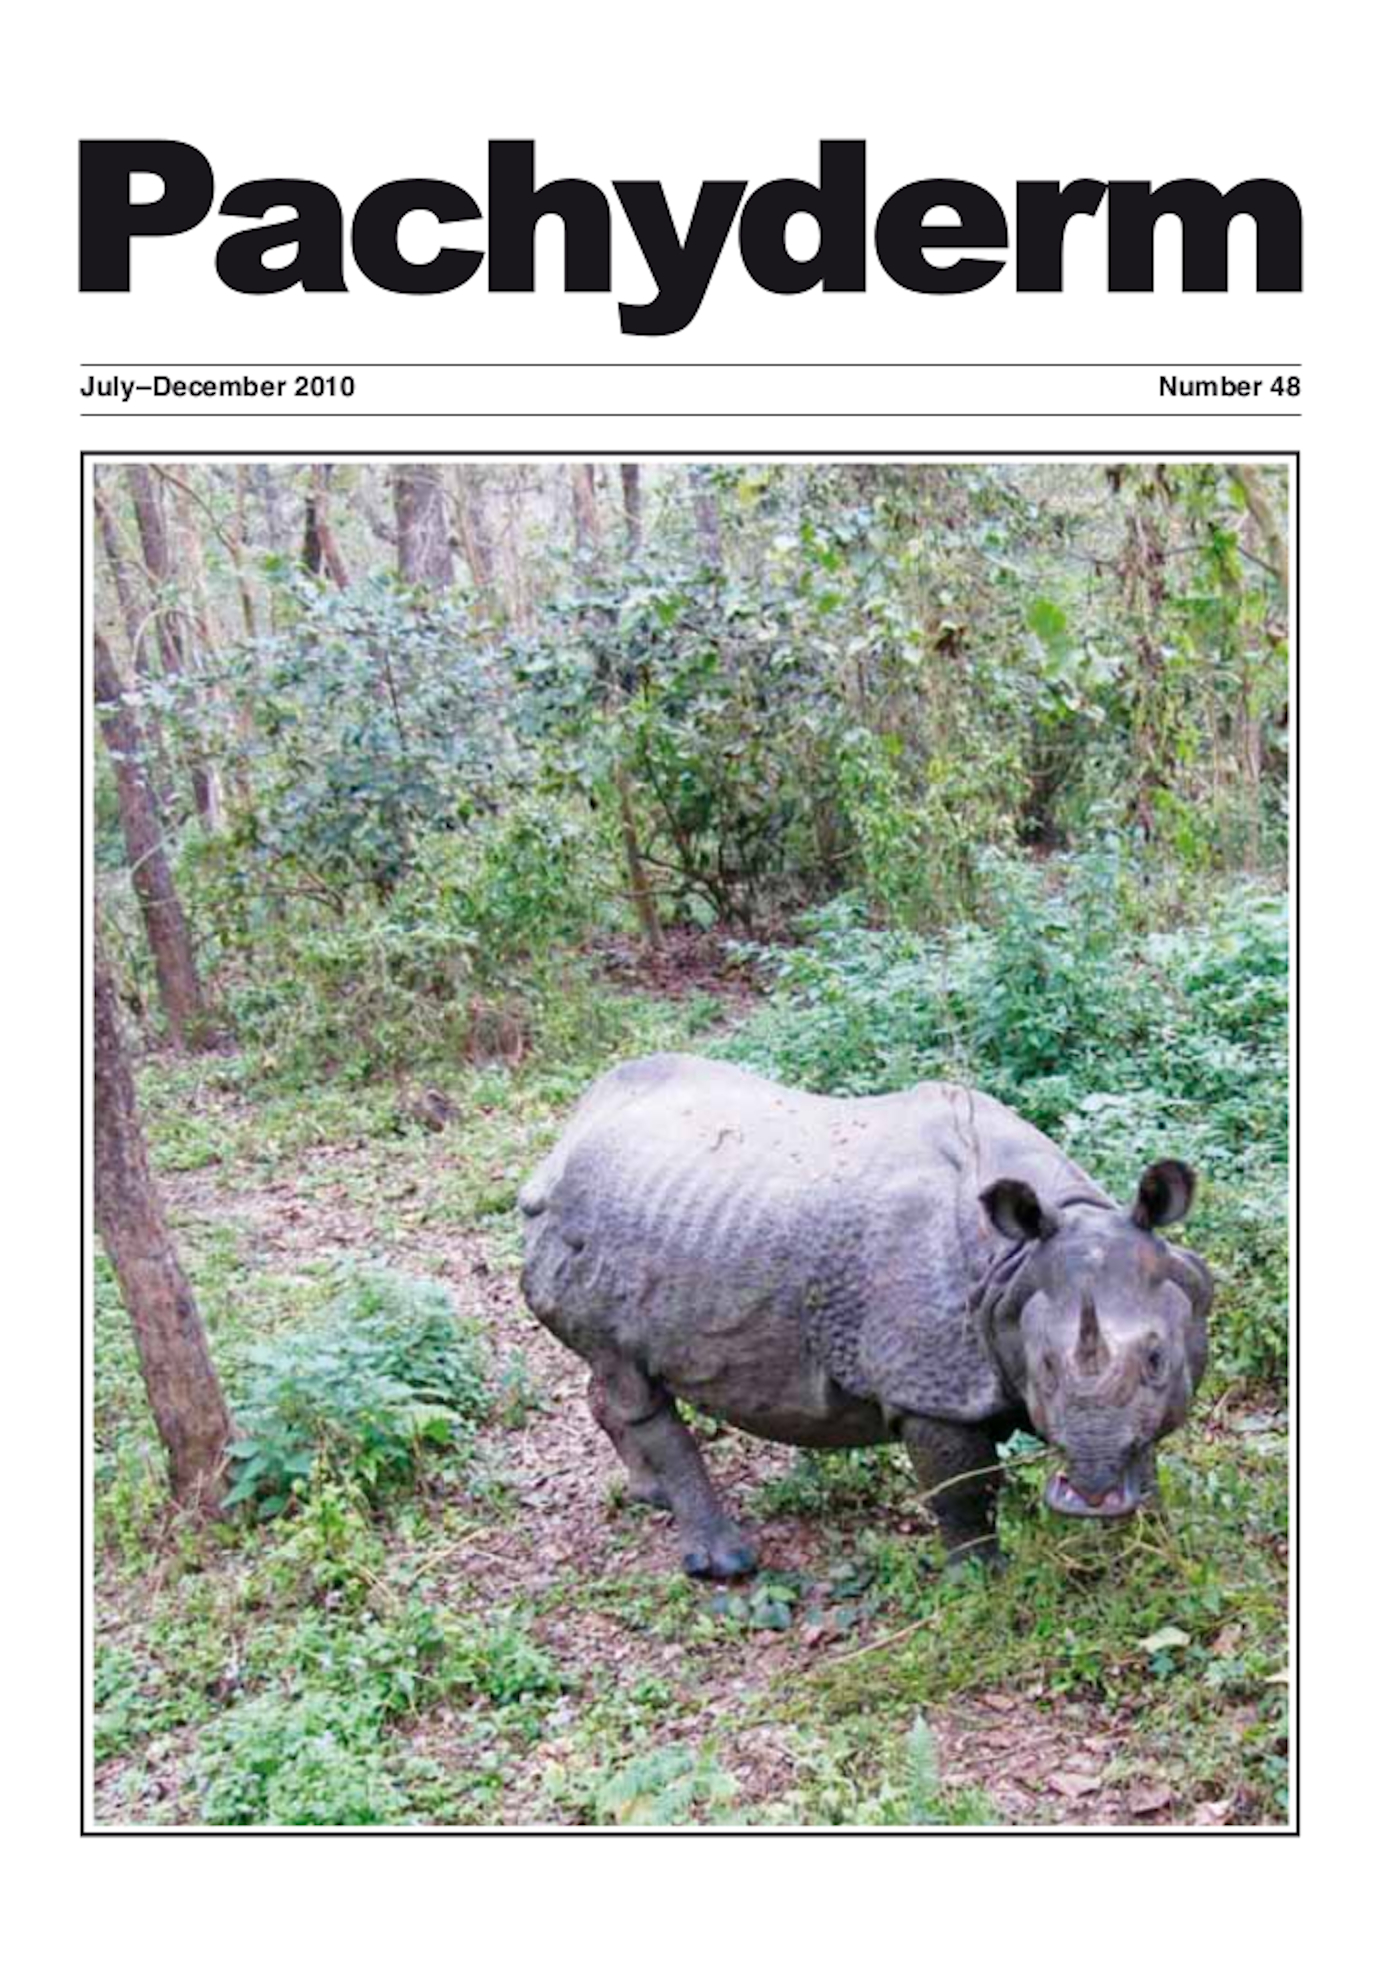 Cover: A greater one-horned rhino (Rhinoceros unicornis) in Chitwan National Park, Nepal, photographed from elephant back. Photo: Esmond Martin